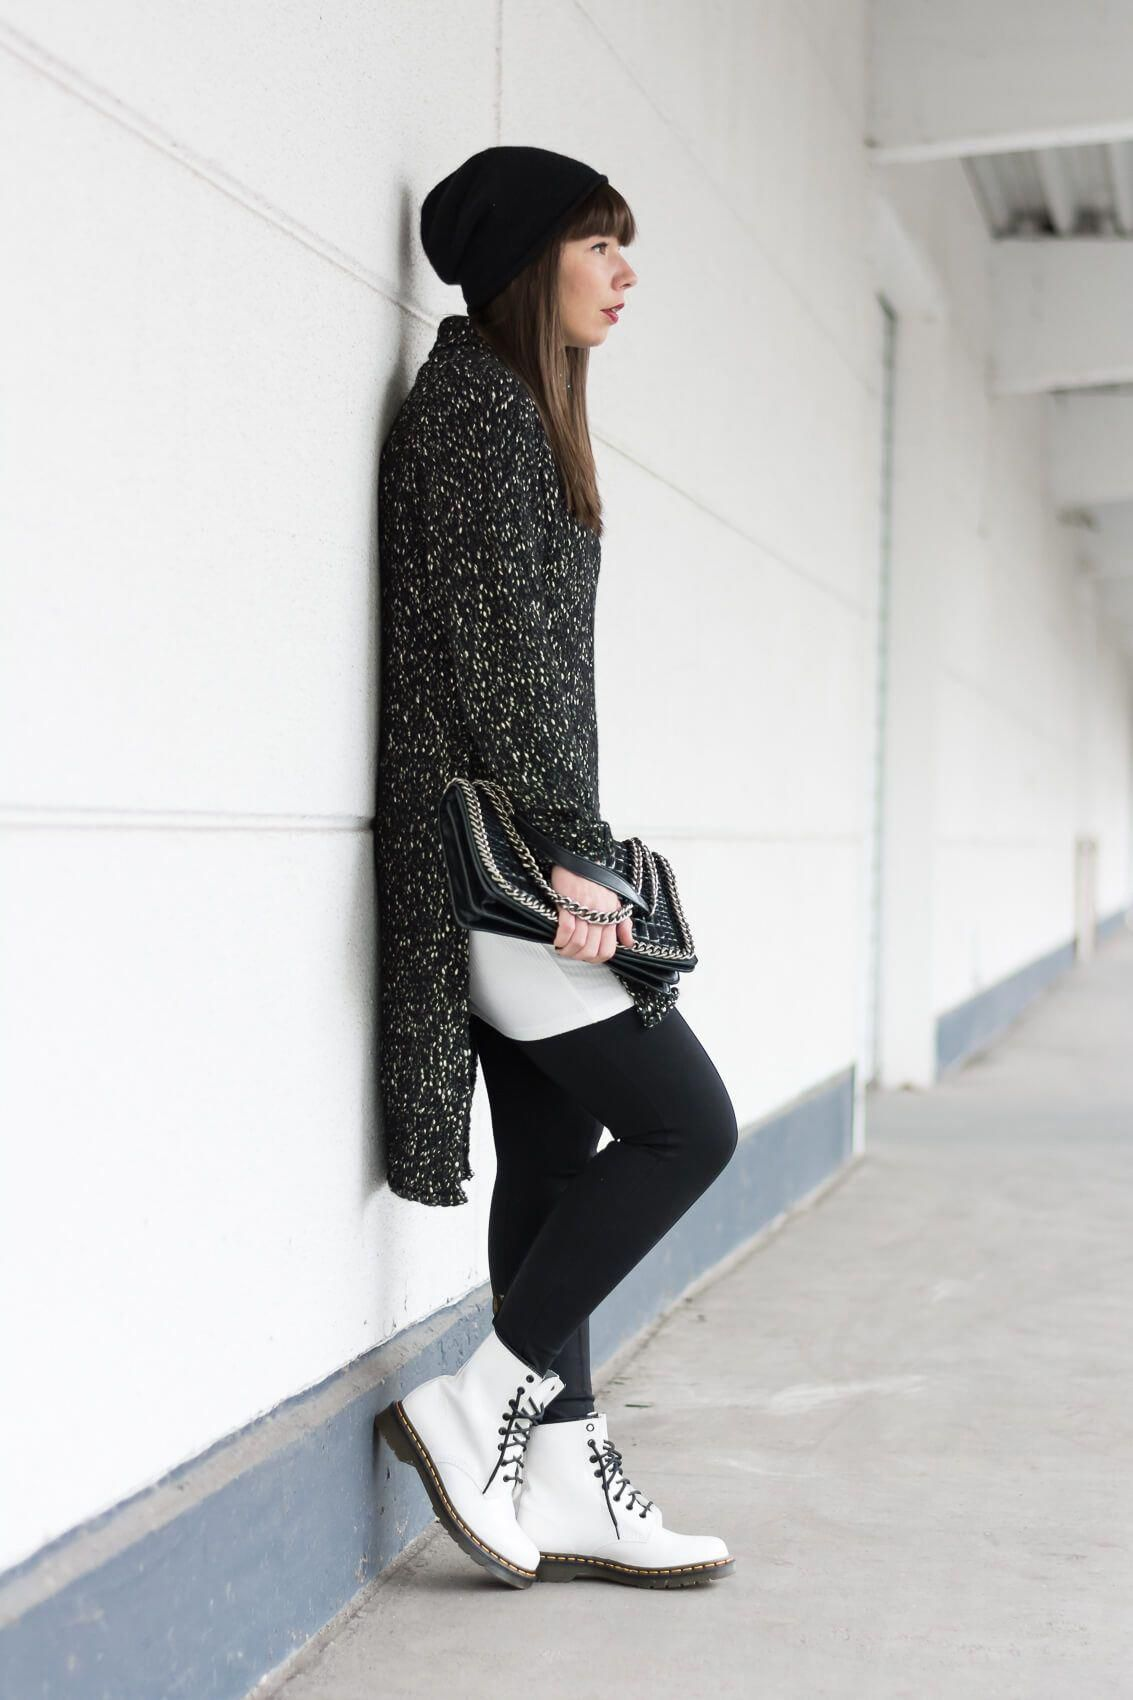 DocMartensoutfit Dr martens outfit, White boots outfit